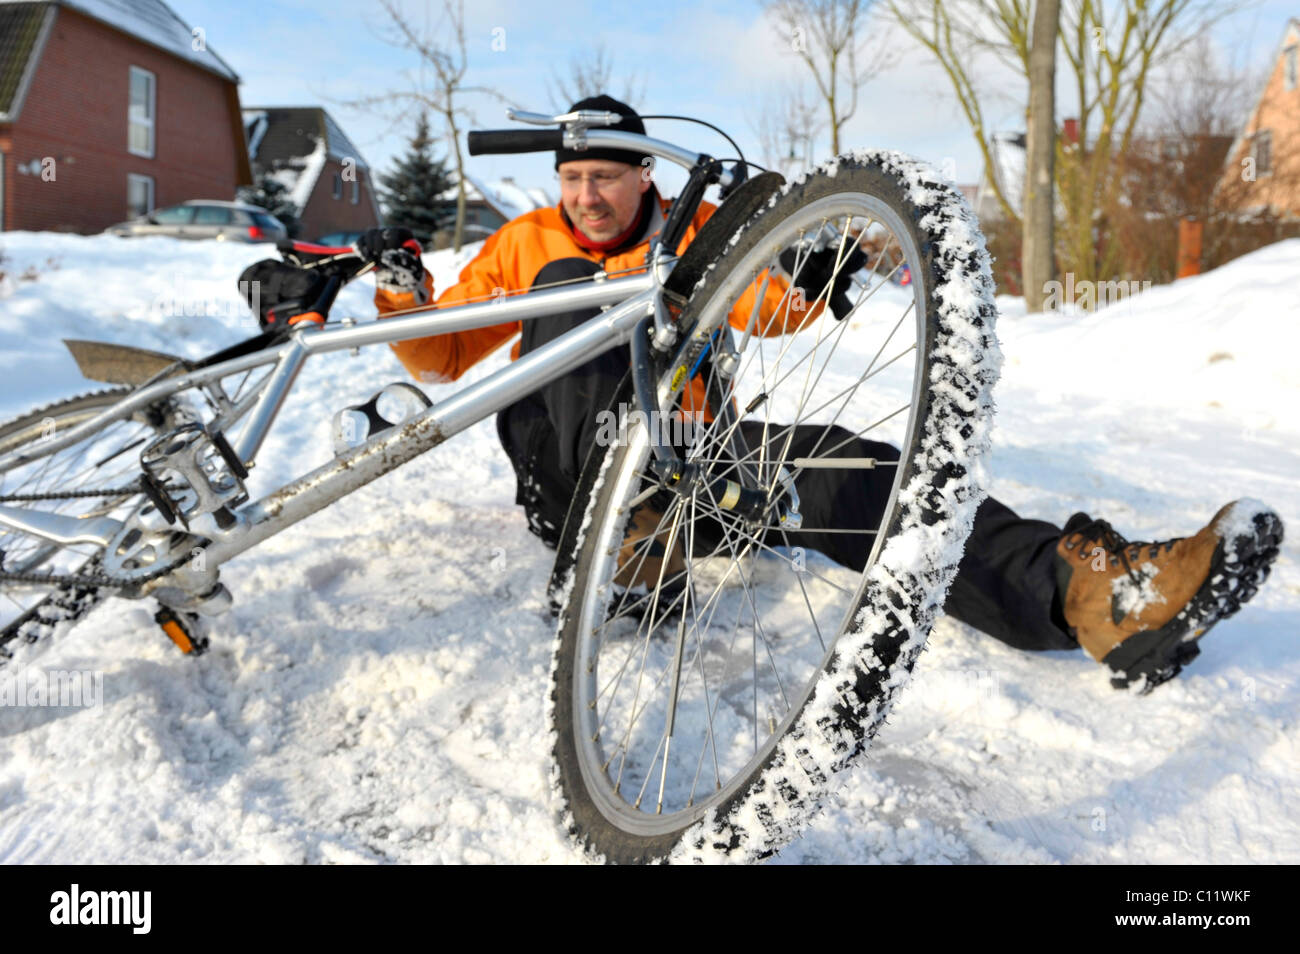 Cyclist crashing on a snow-covered slippery road - Stock Image